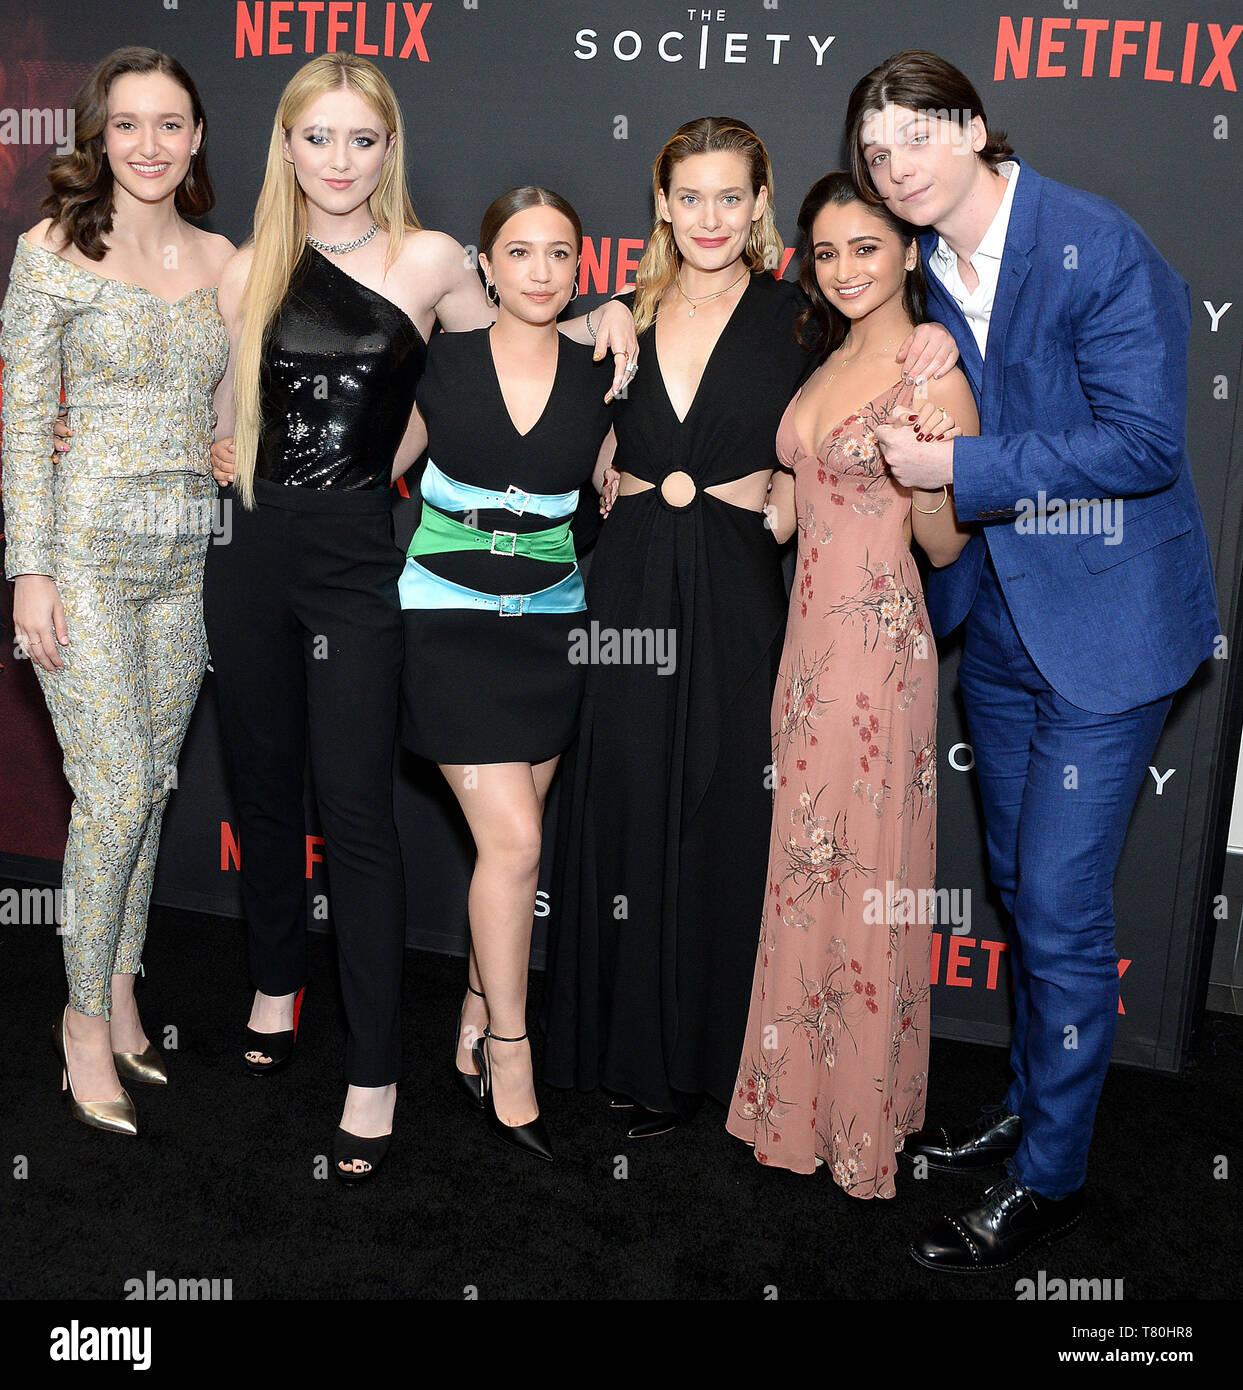 Los Angeles, California, USA. 09th May, 2019. Pictured: Olivia Nikkanen, Kathryn Newton, Gideon Adlon, Rachel Keller, Salena Qureshi, Jack Mulhern Mandatory Credit © Gilbert Flores/BroadimageNetflix - The Society Season 1 Premiere - Arrivals 5/9/19, Regal Cinemas L.A. LIVE, Los Angeles CA, United States of America Credit: Broadimage Entertainment/Alamy Live News - Stock Image